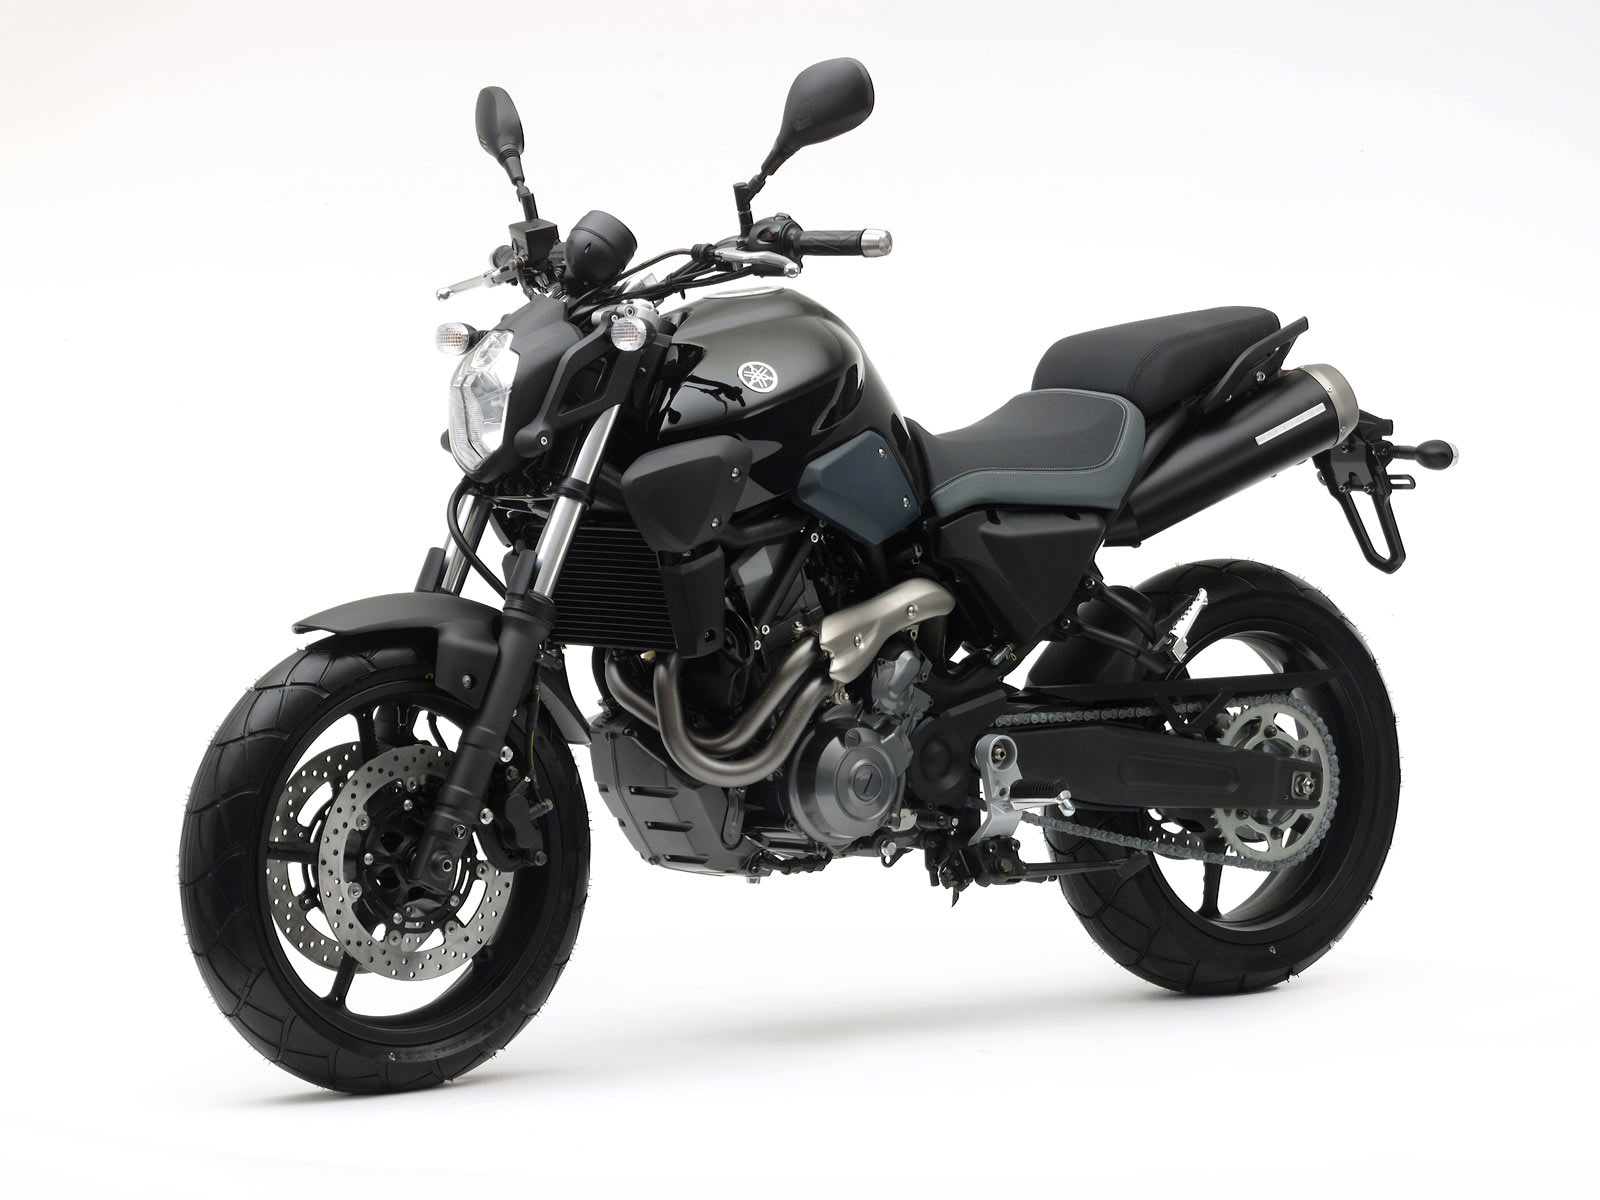 2007 Yamaha Mt03 Motorcycle Pictures Specifications